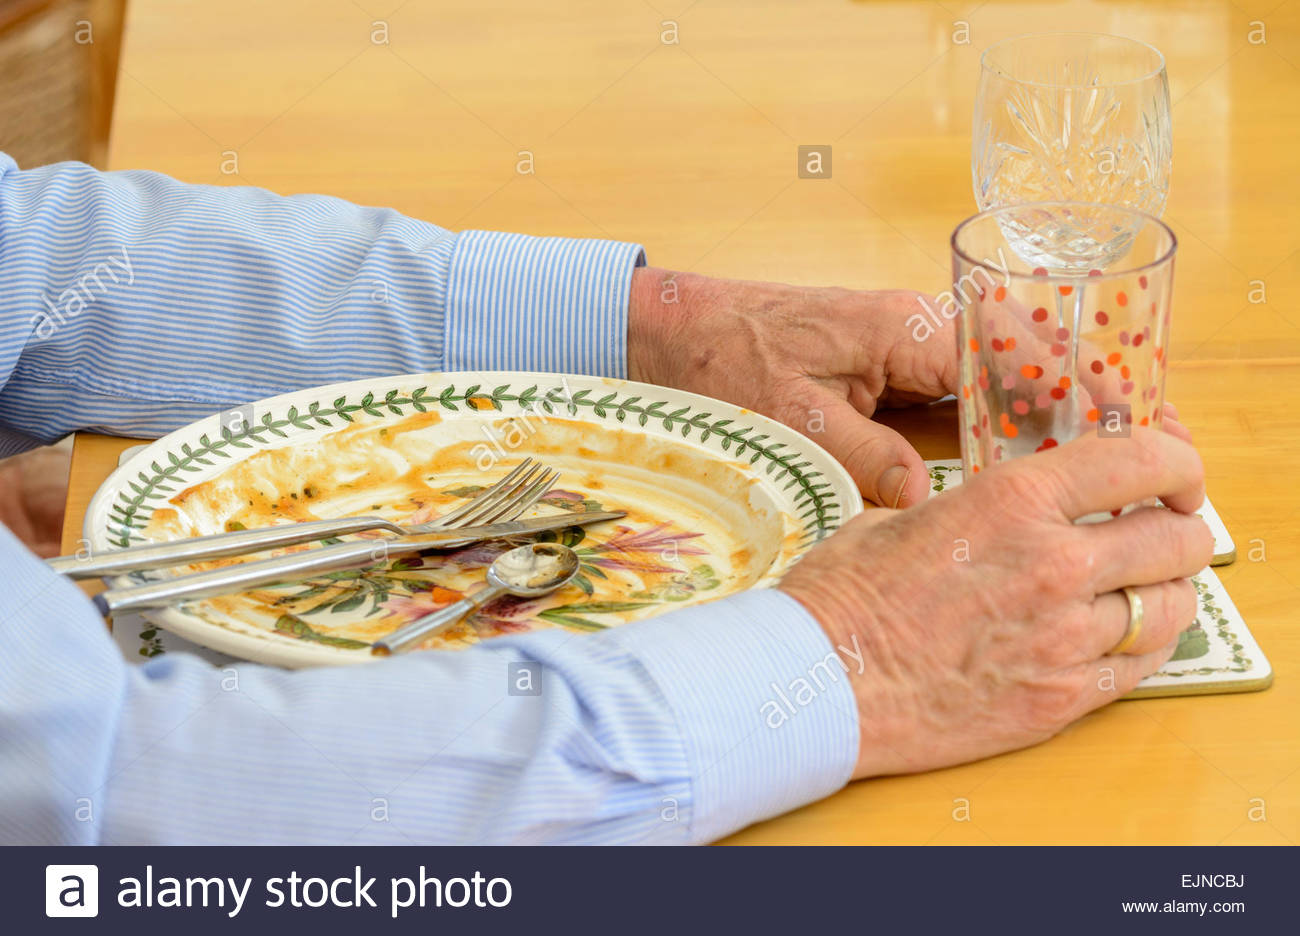 Man sitting with an empty dinner plate, knife, fork and glasses, after finishing a meal. - Stock Image